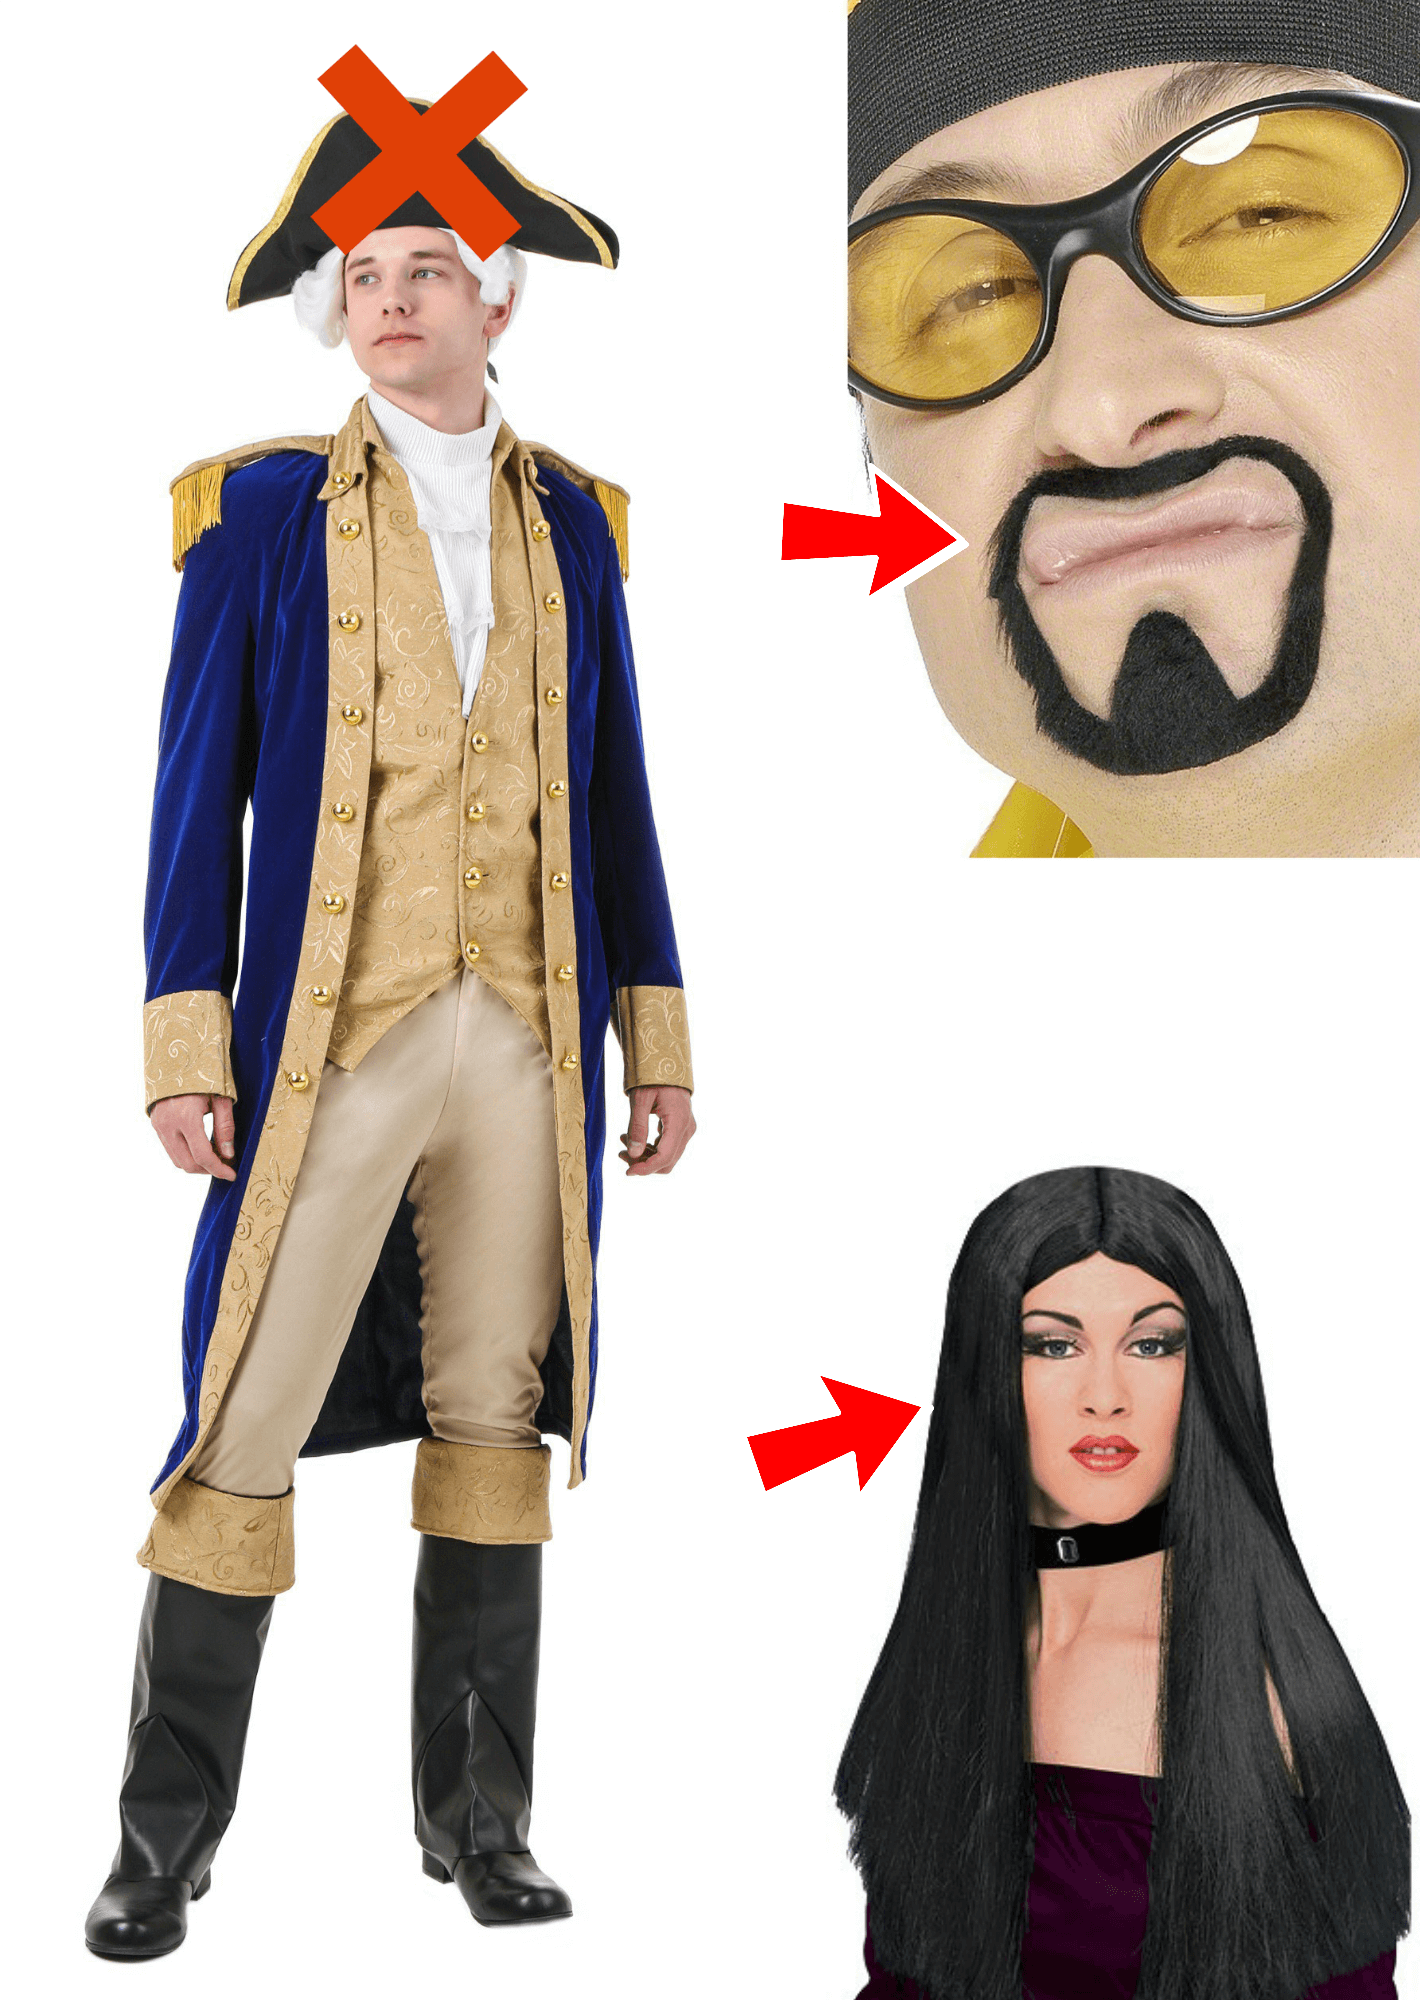 Diy hamilton costume ideas that will leave you satisfied halloween alexander hamilton halloween costume solutioingenieria Gallery